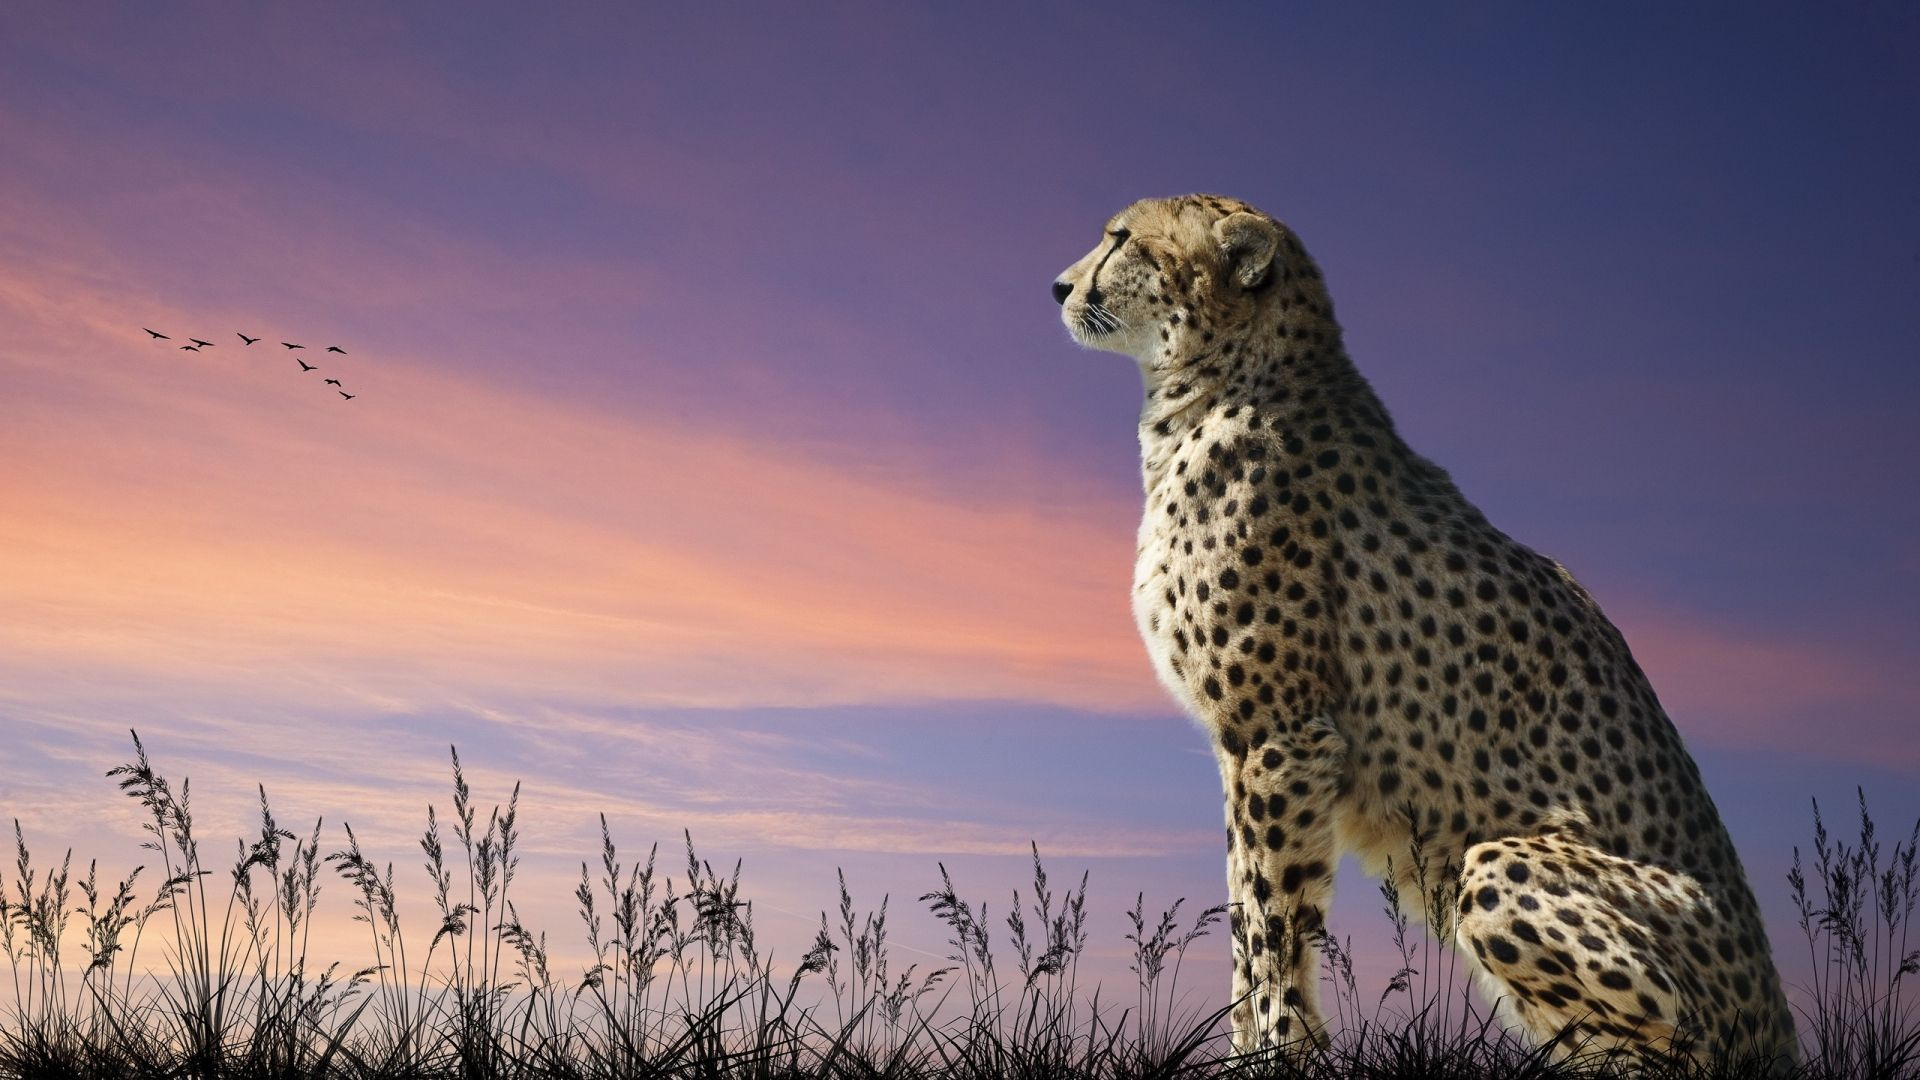 animals 1920x1080 full hd wallpapers 1080p wallpapers